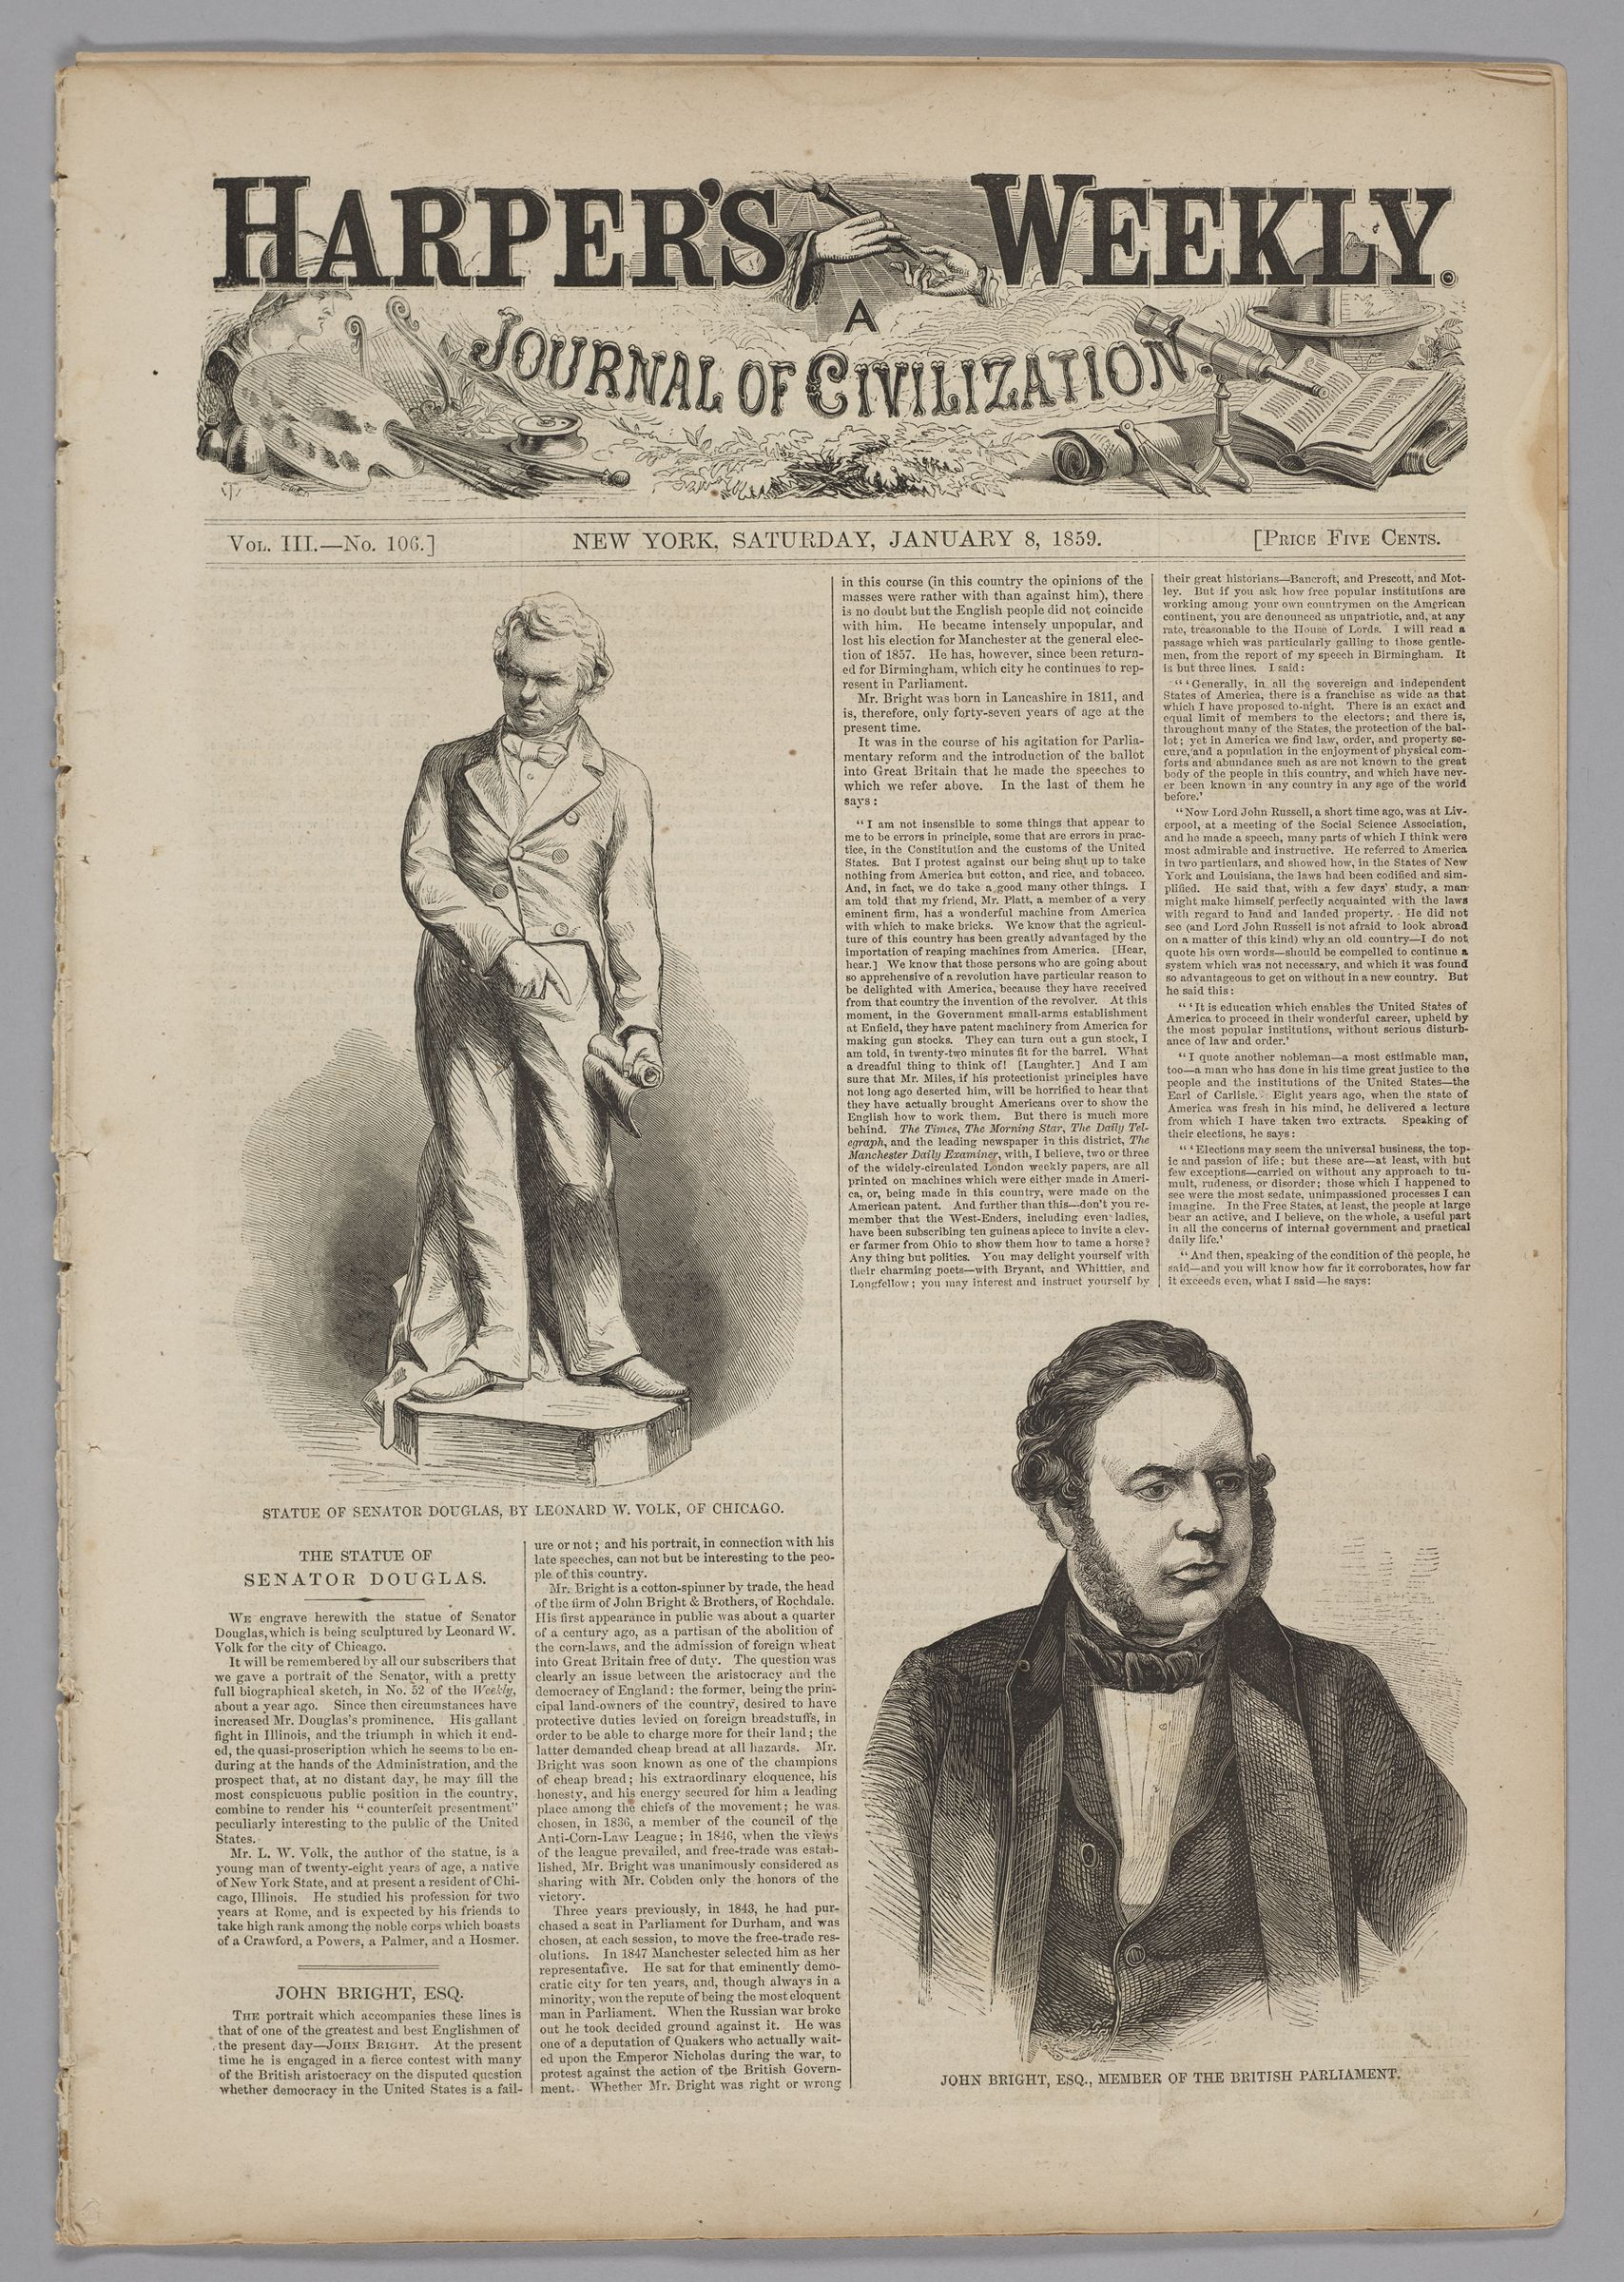 Harper's Weekly, Vol. Cxi, No. 106